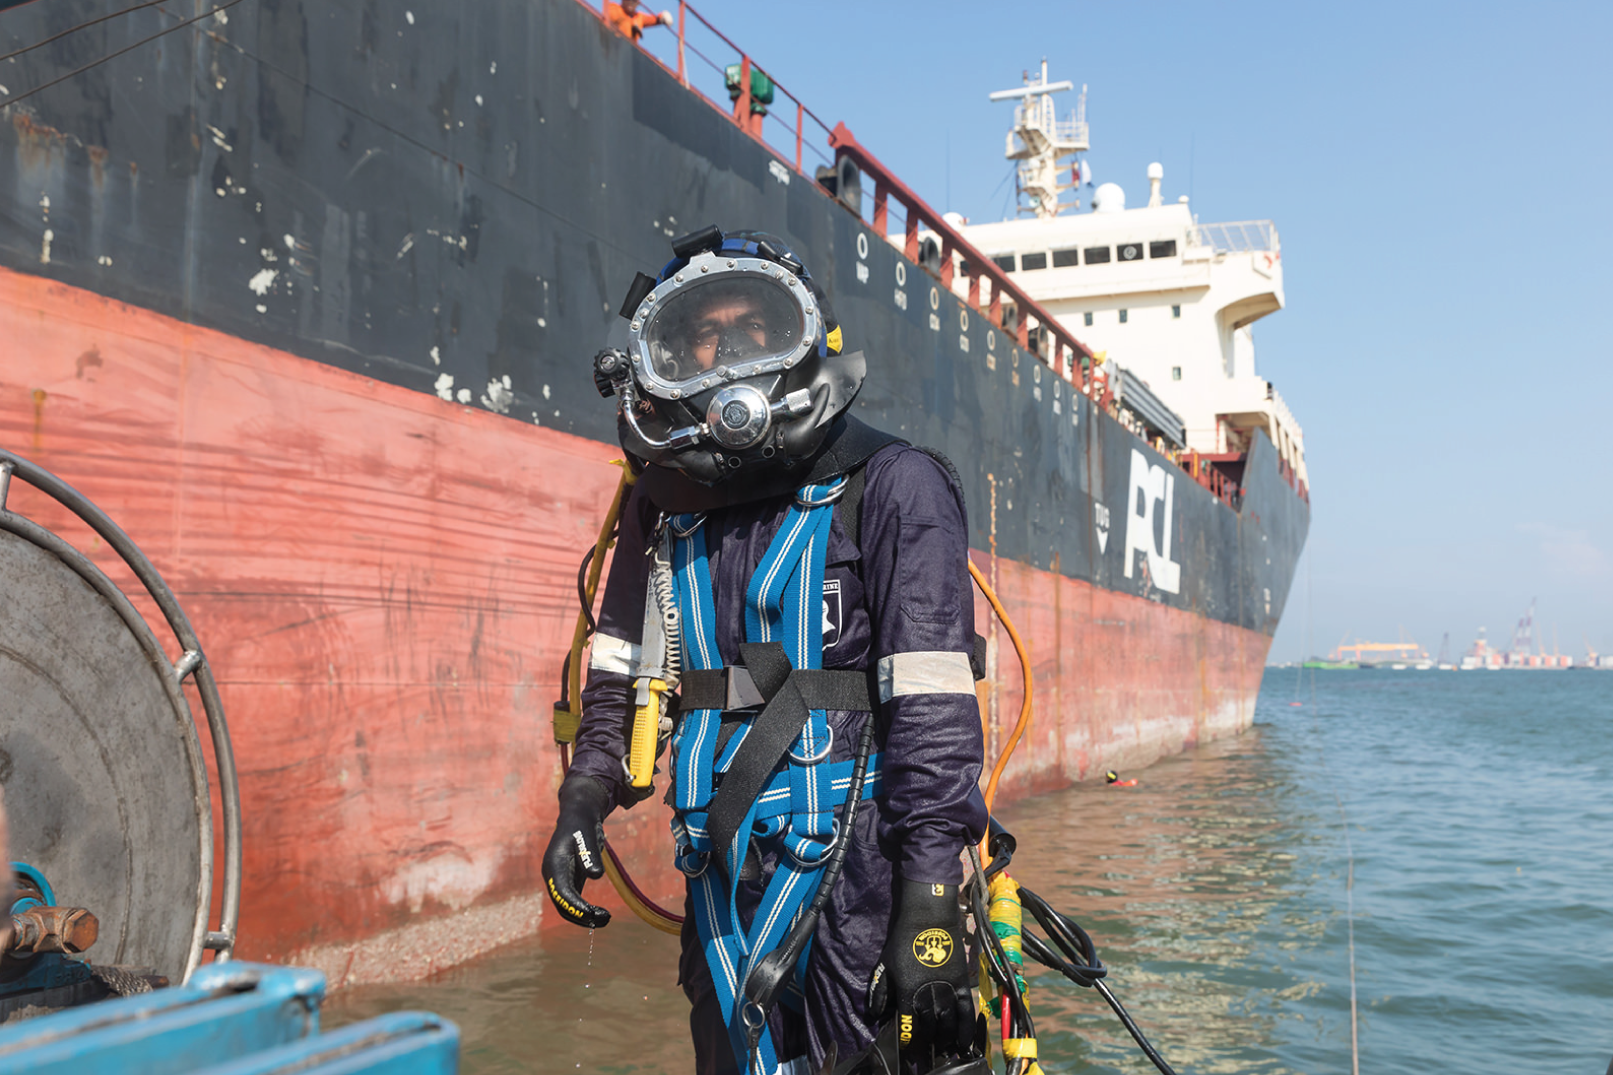 3 reasons to make Underwater Hull Inspection part of your ship maintenance plan